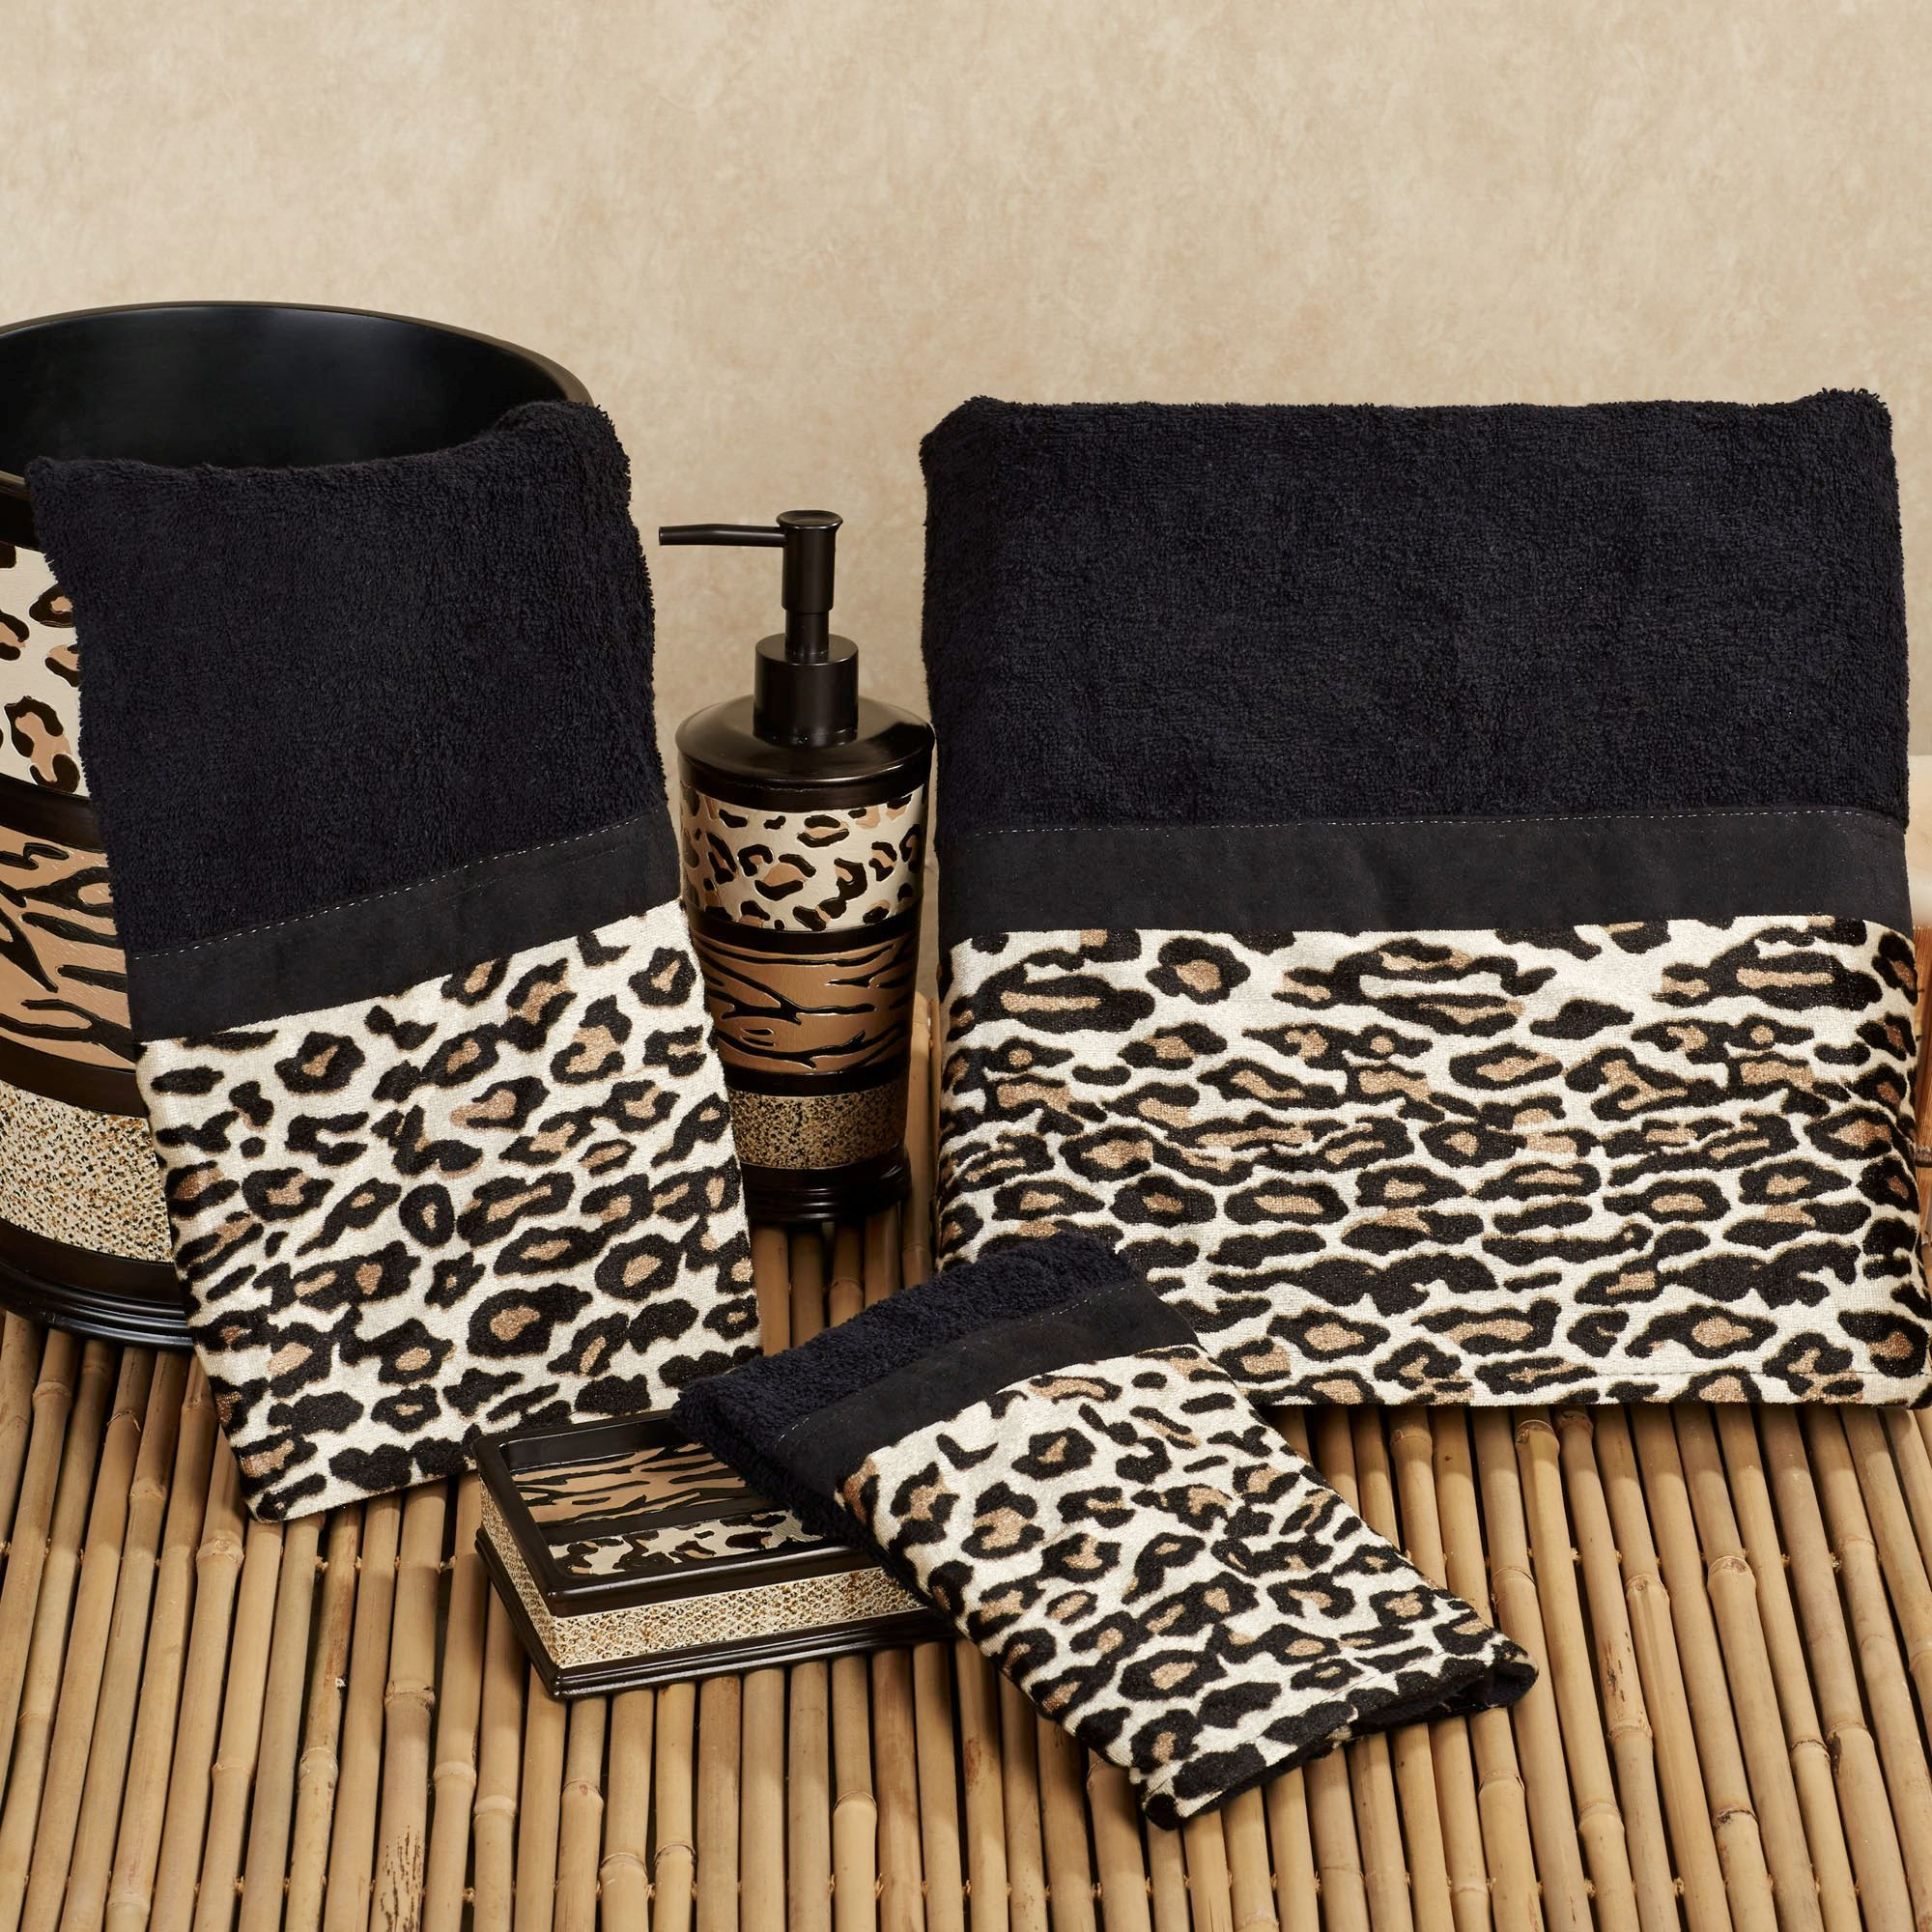 Gazelle Bath Towels Black Hand